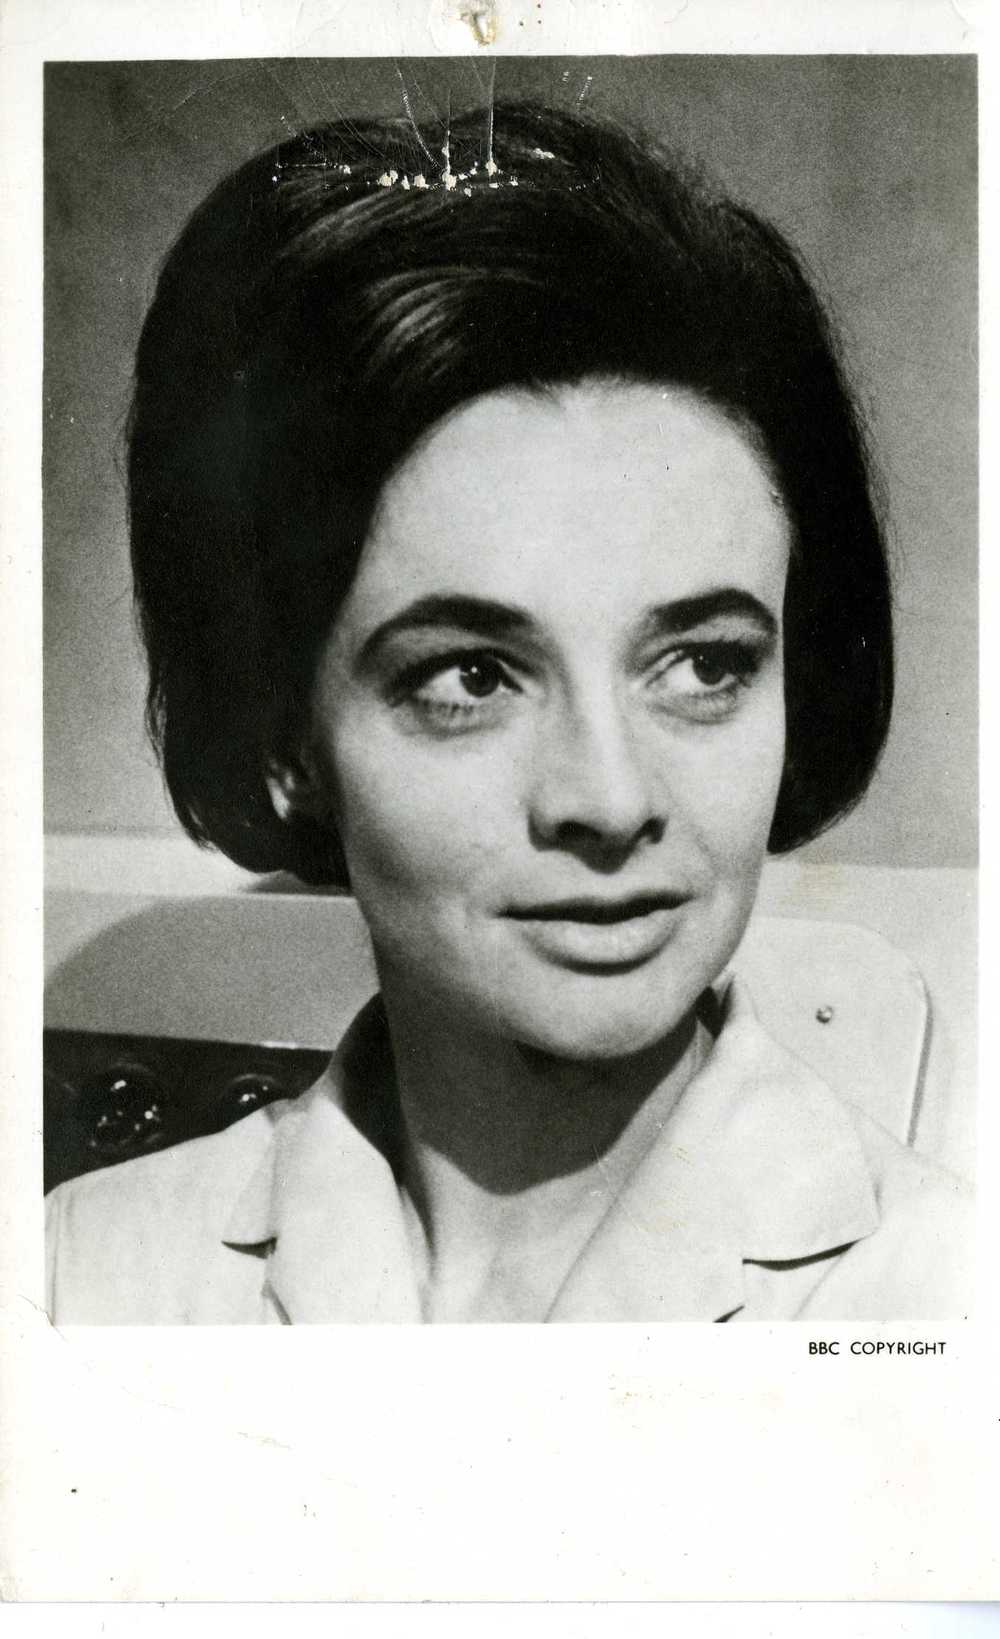 Early BBC Promotional Photo Card of Jacqueline Hill